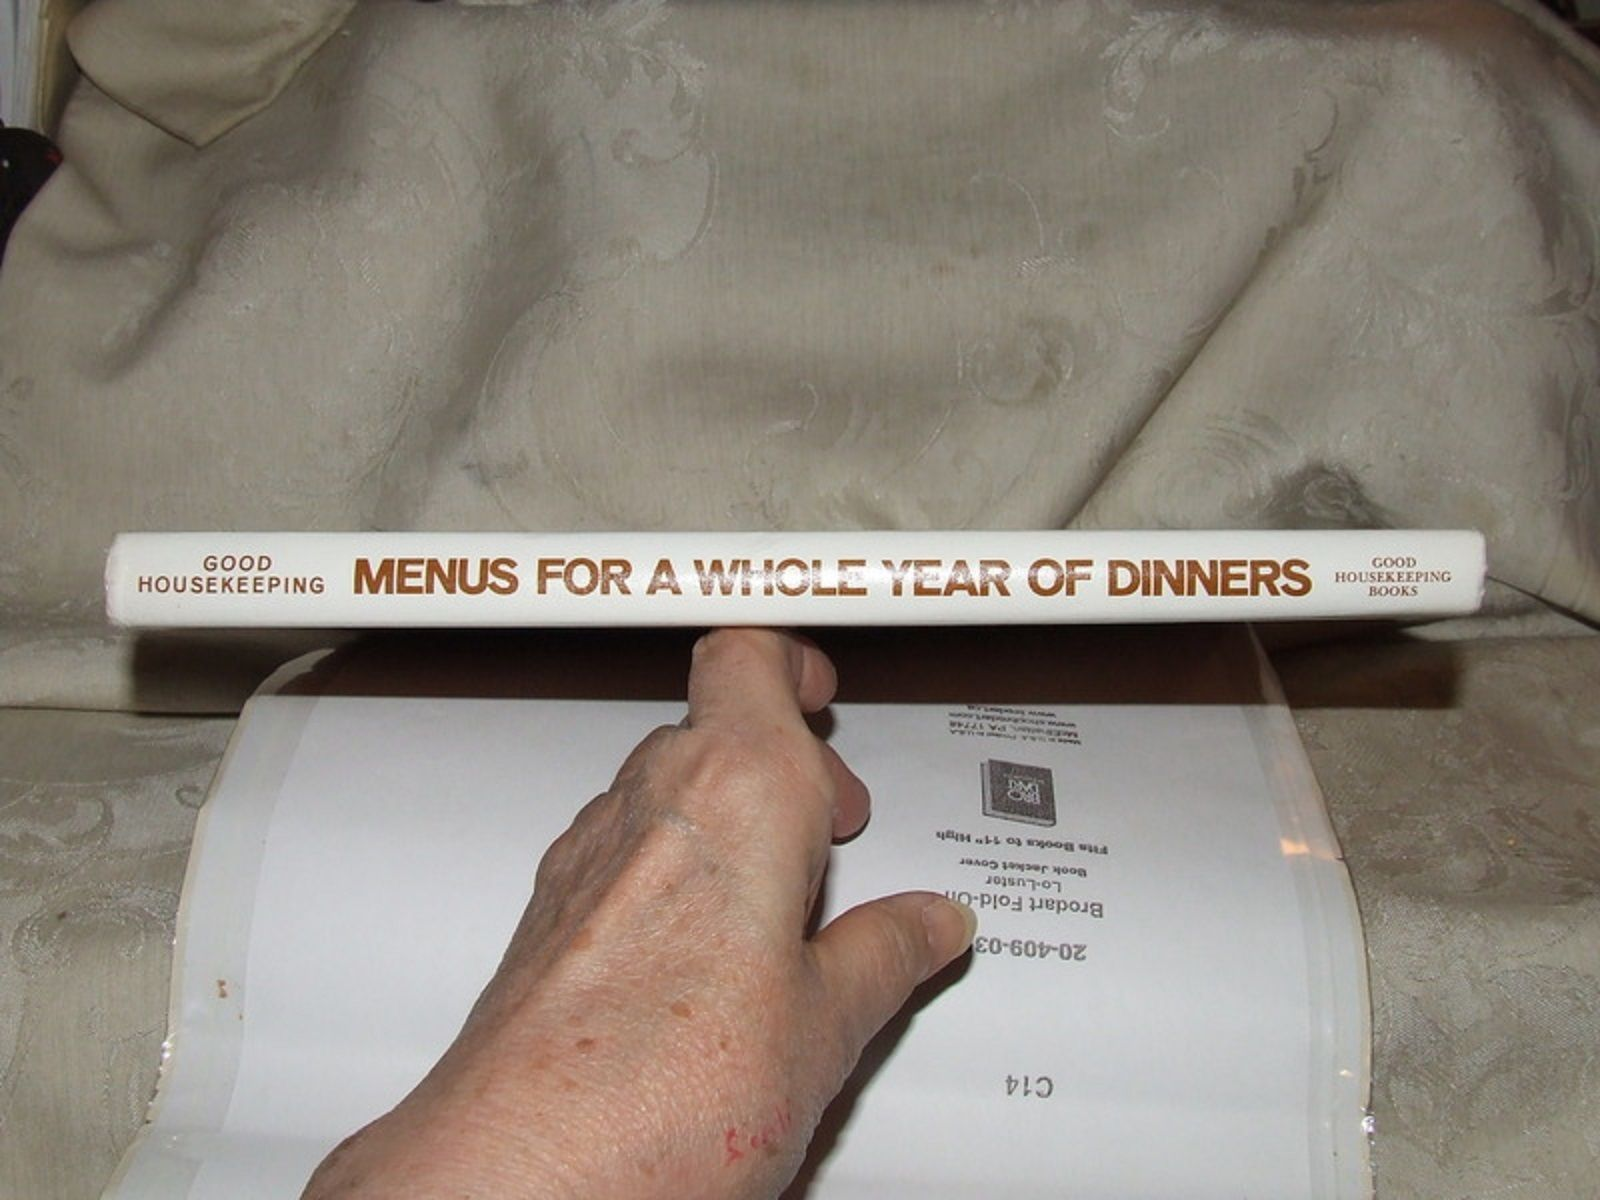 1971 Good Housekeeping Menus for a Whole Year of Dinners 700 Seasonal Recipes